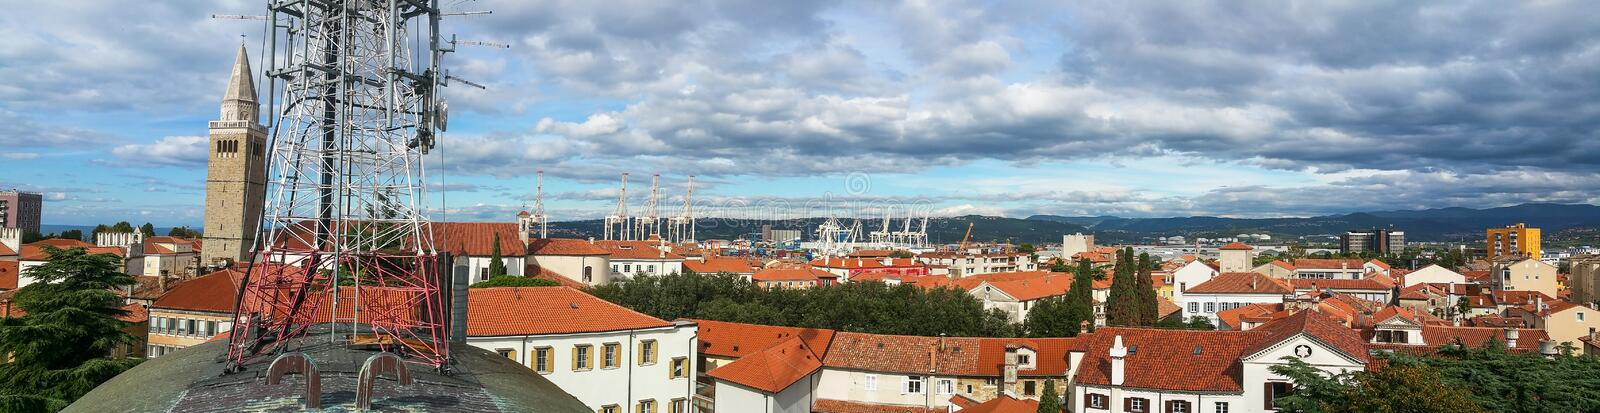 Panoramic view from the roof with cellular network antenna tower on top transmitting mobile signal over old city town Koper, royalty free stock photos